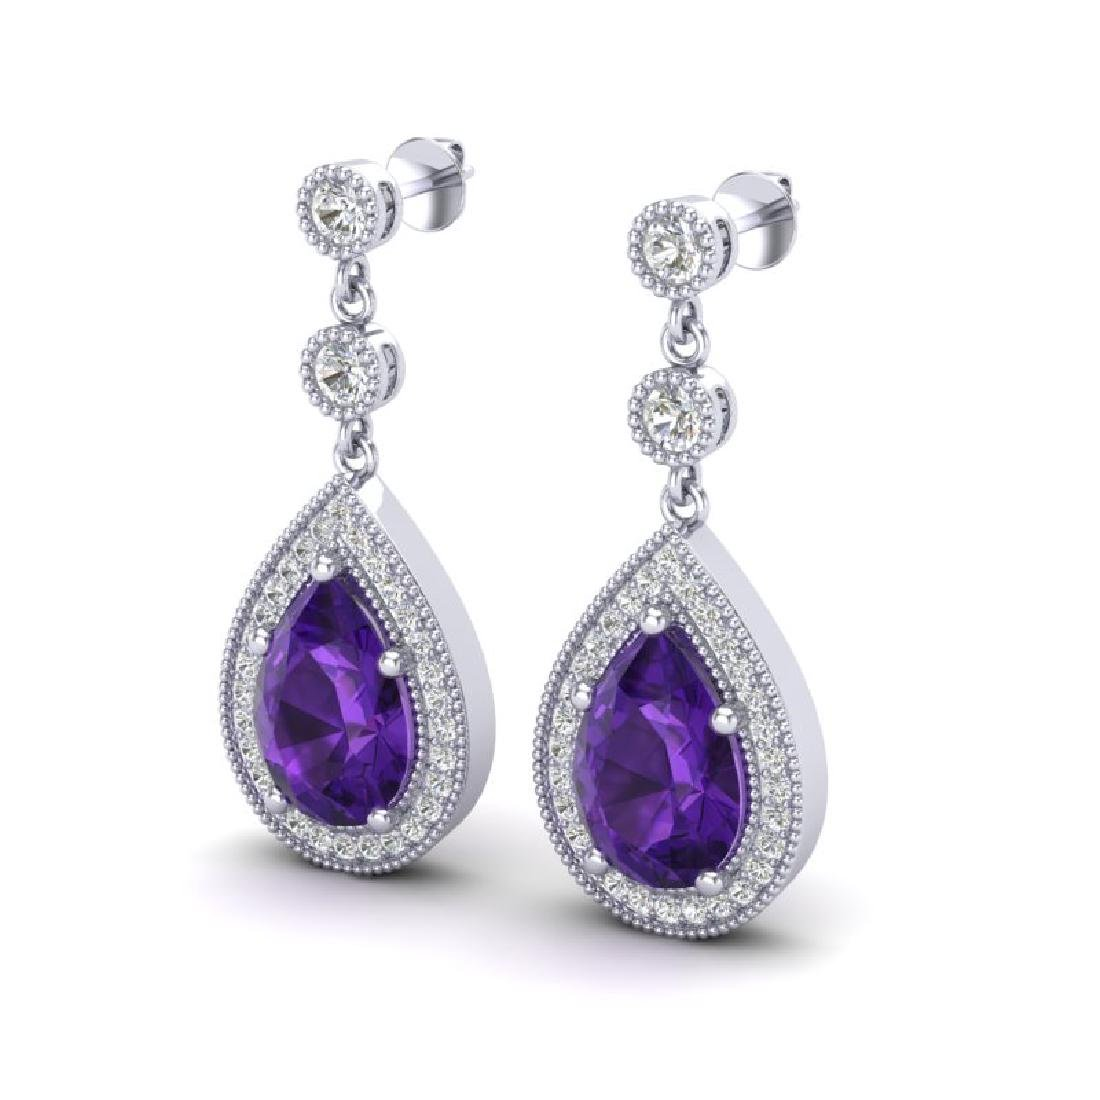 4.50 CTW Amethyst & Micro Pave VS/SI Diamond Earrings